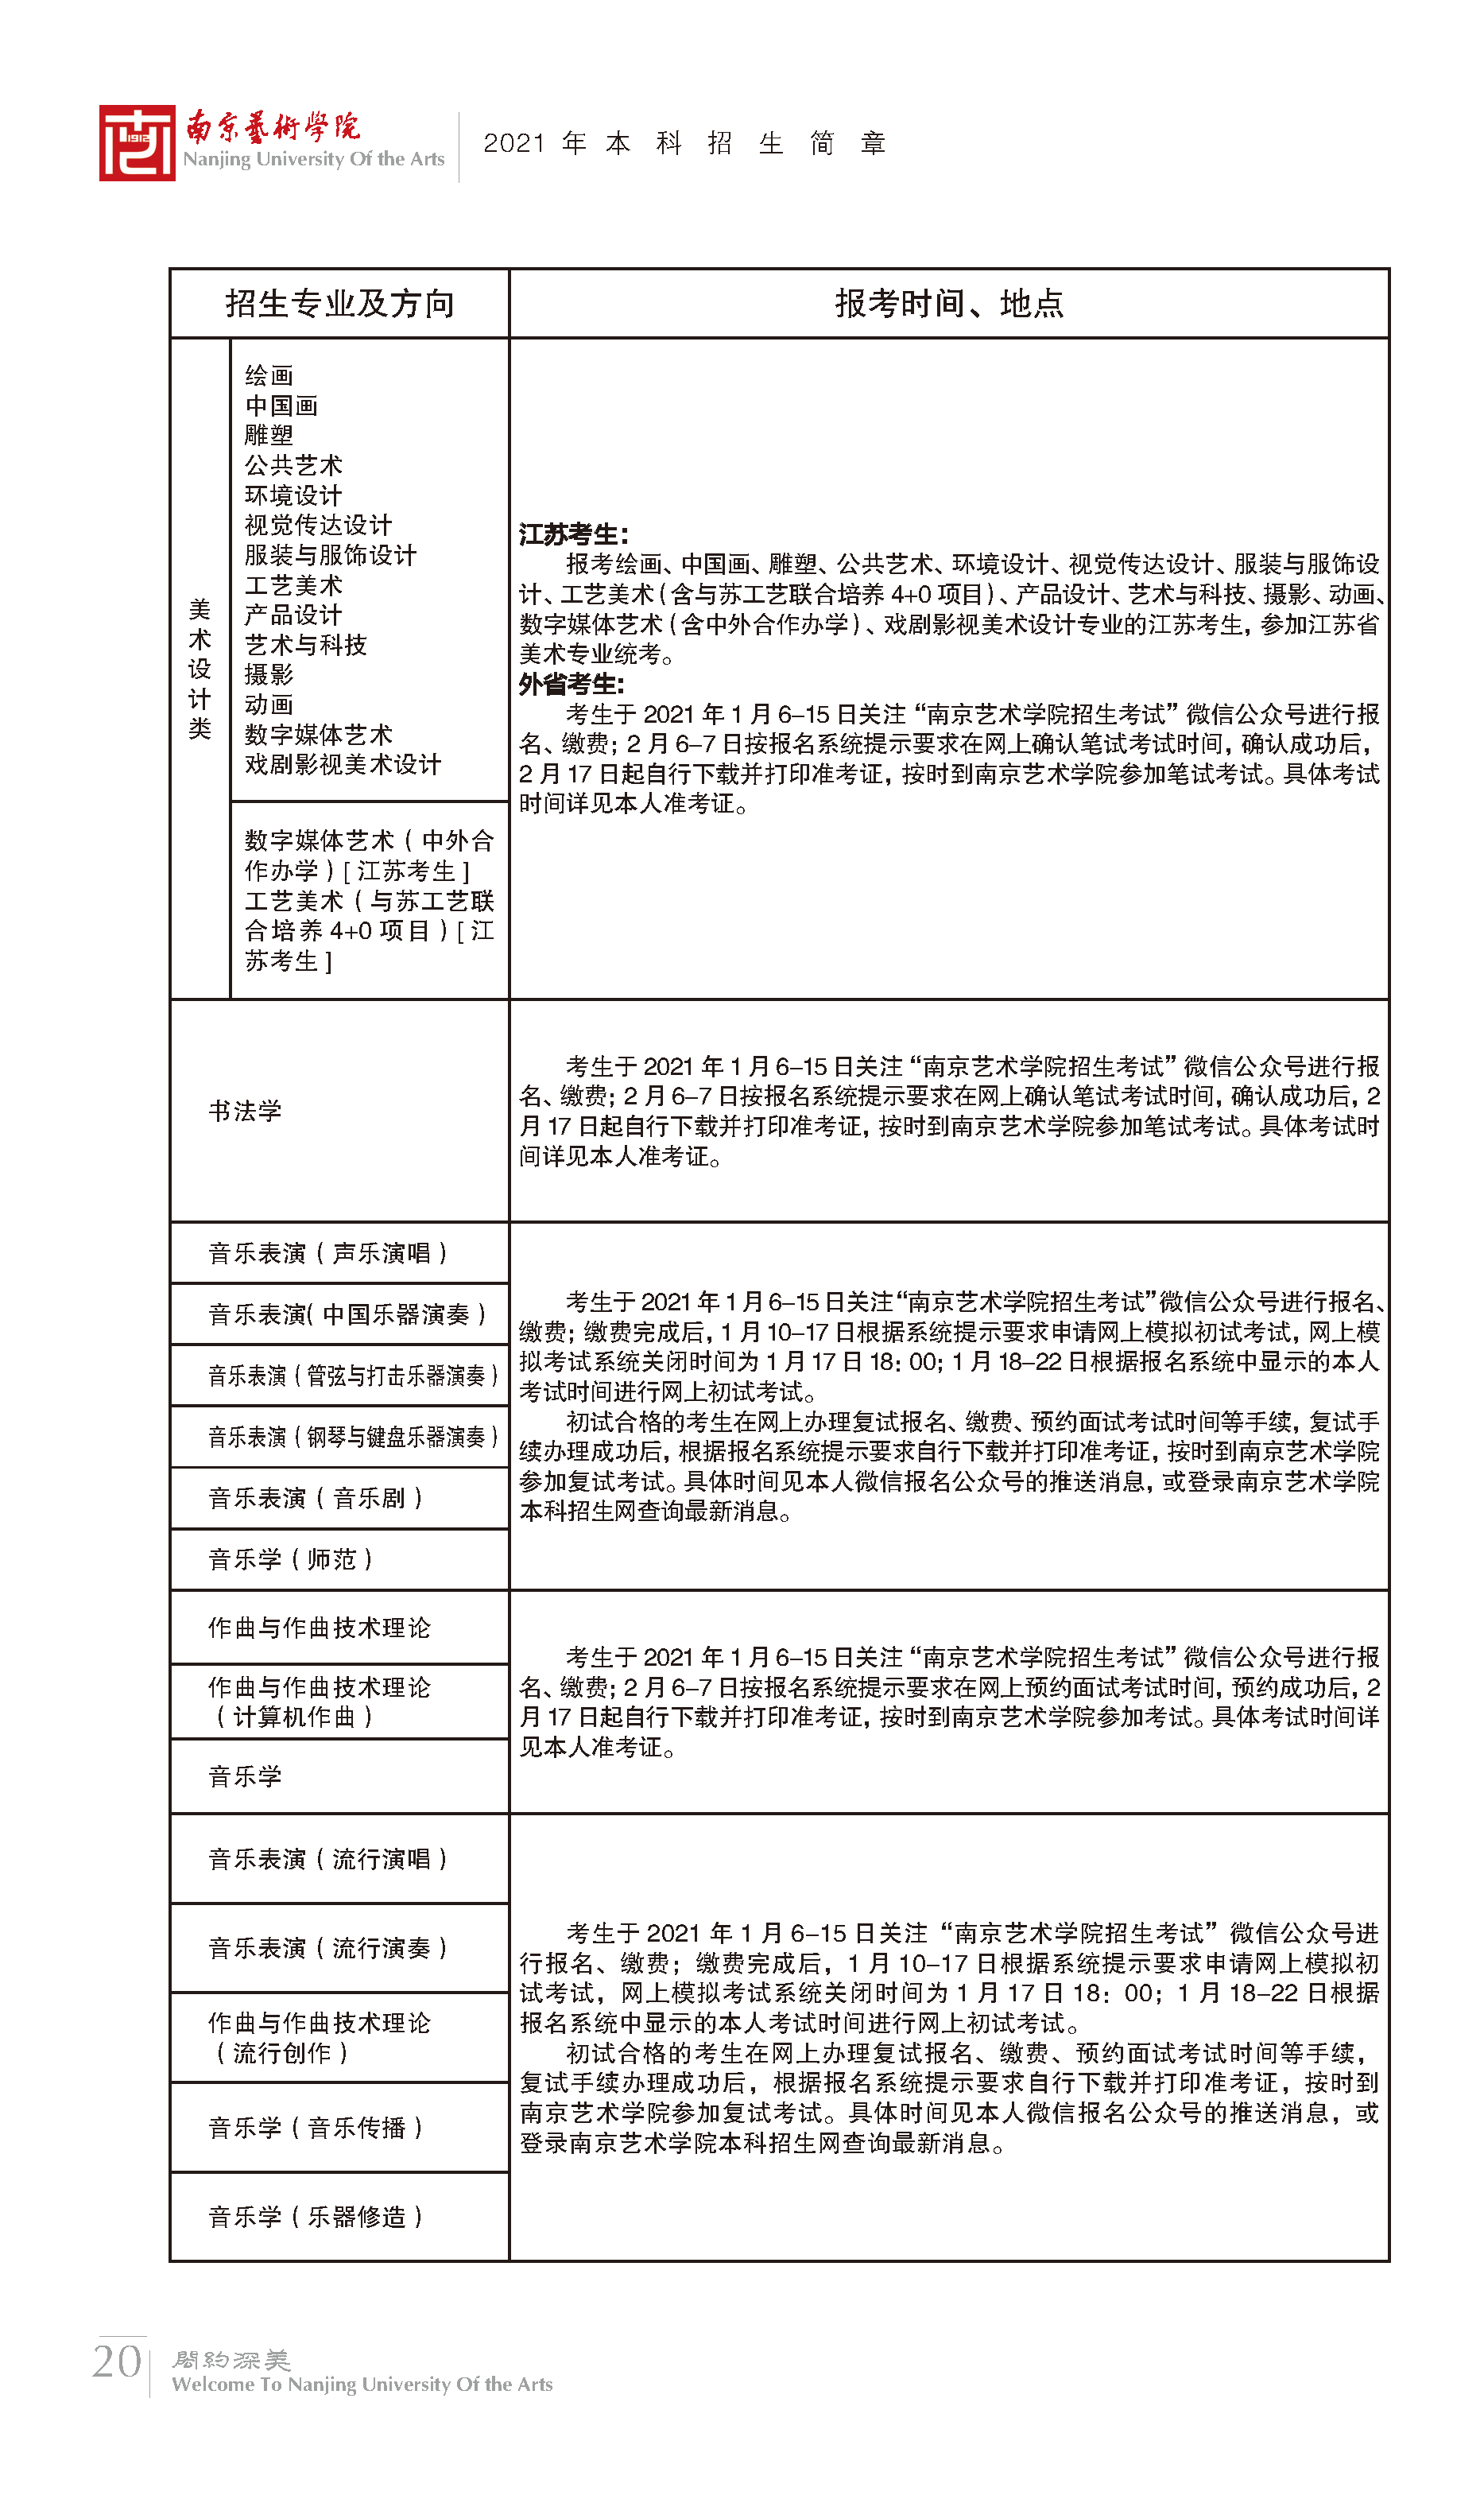 df5cc3db-917f-441e-828a-ab054bf9d032_页面_20.png